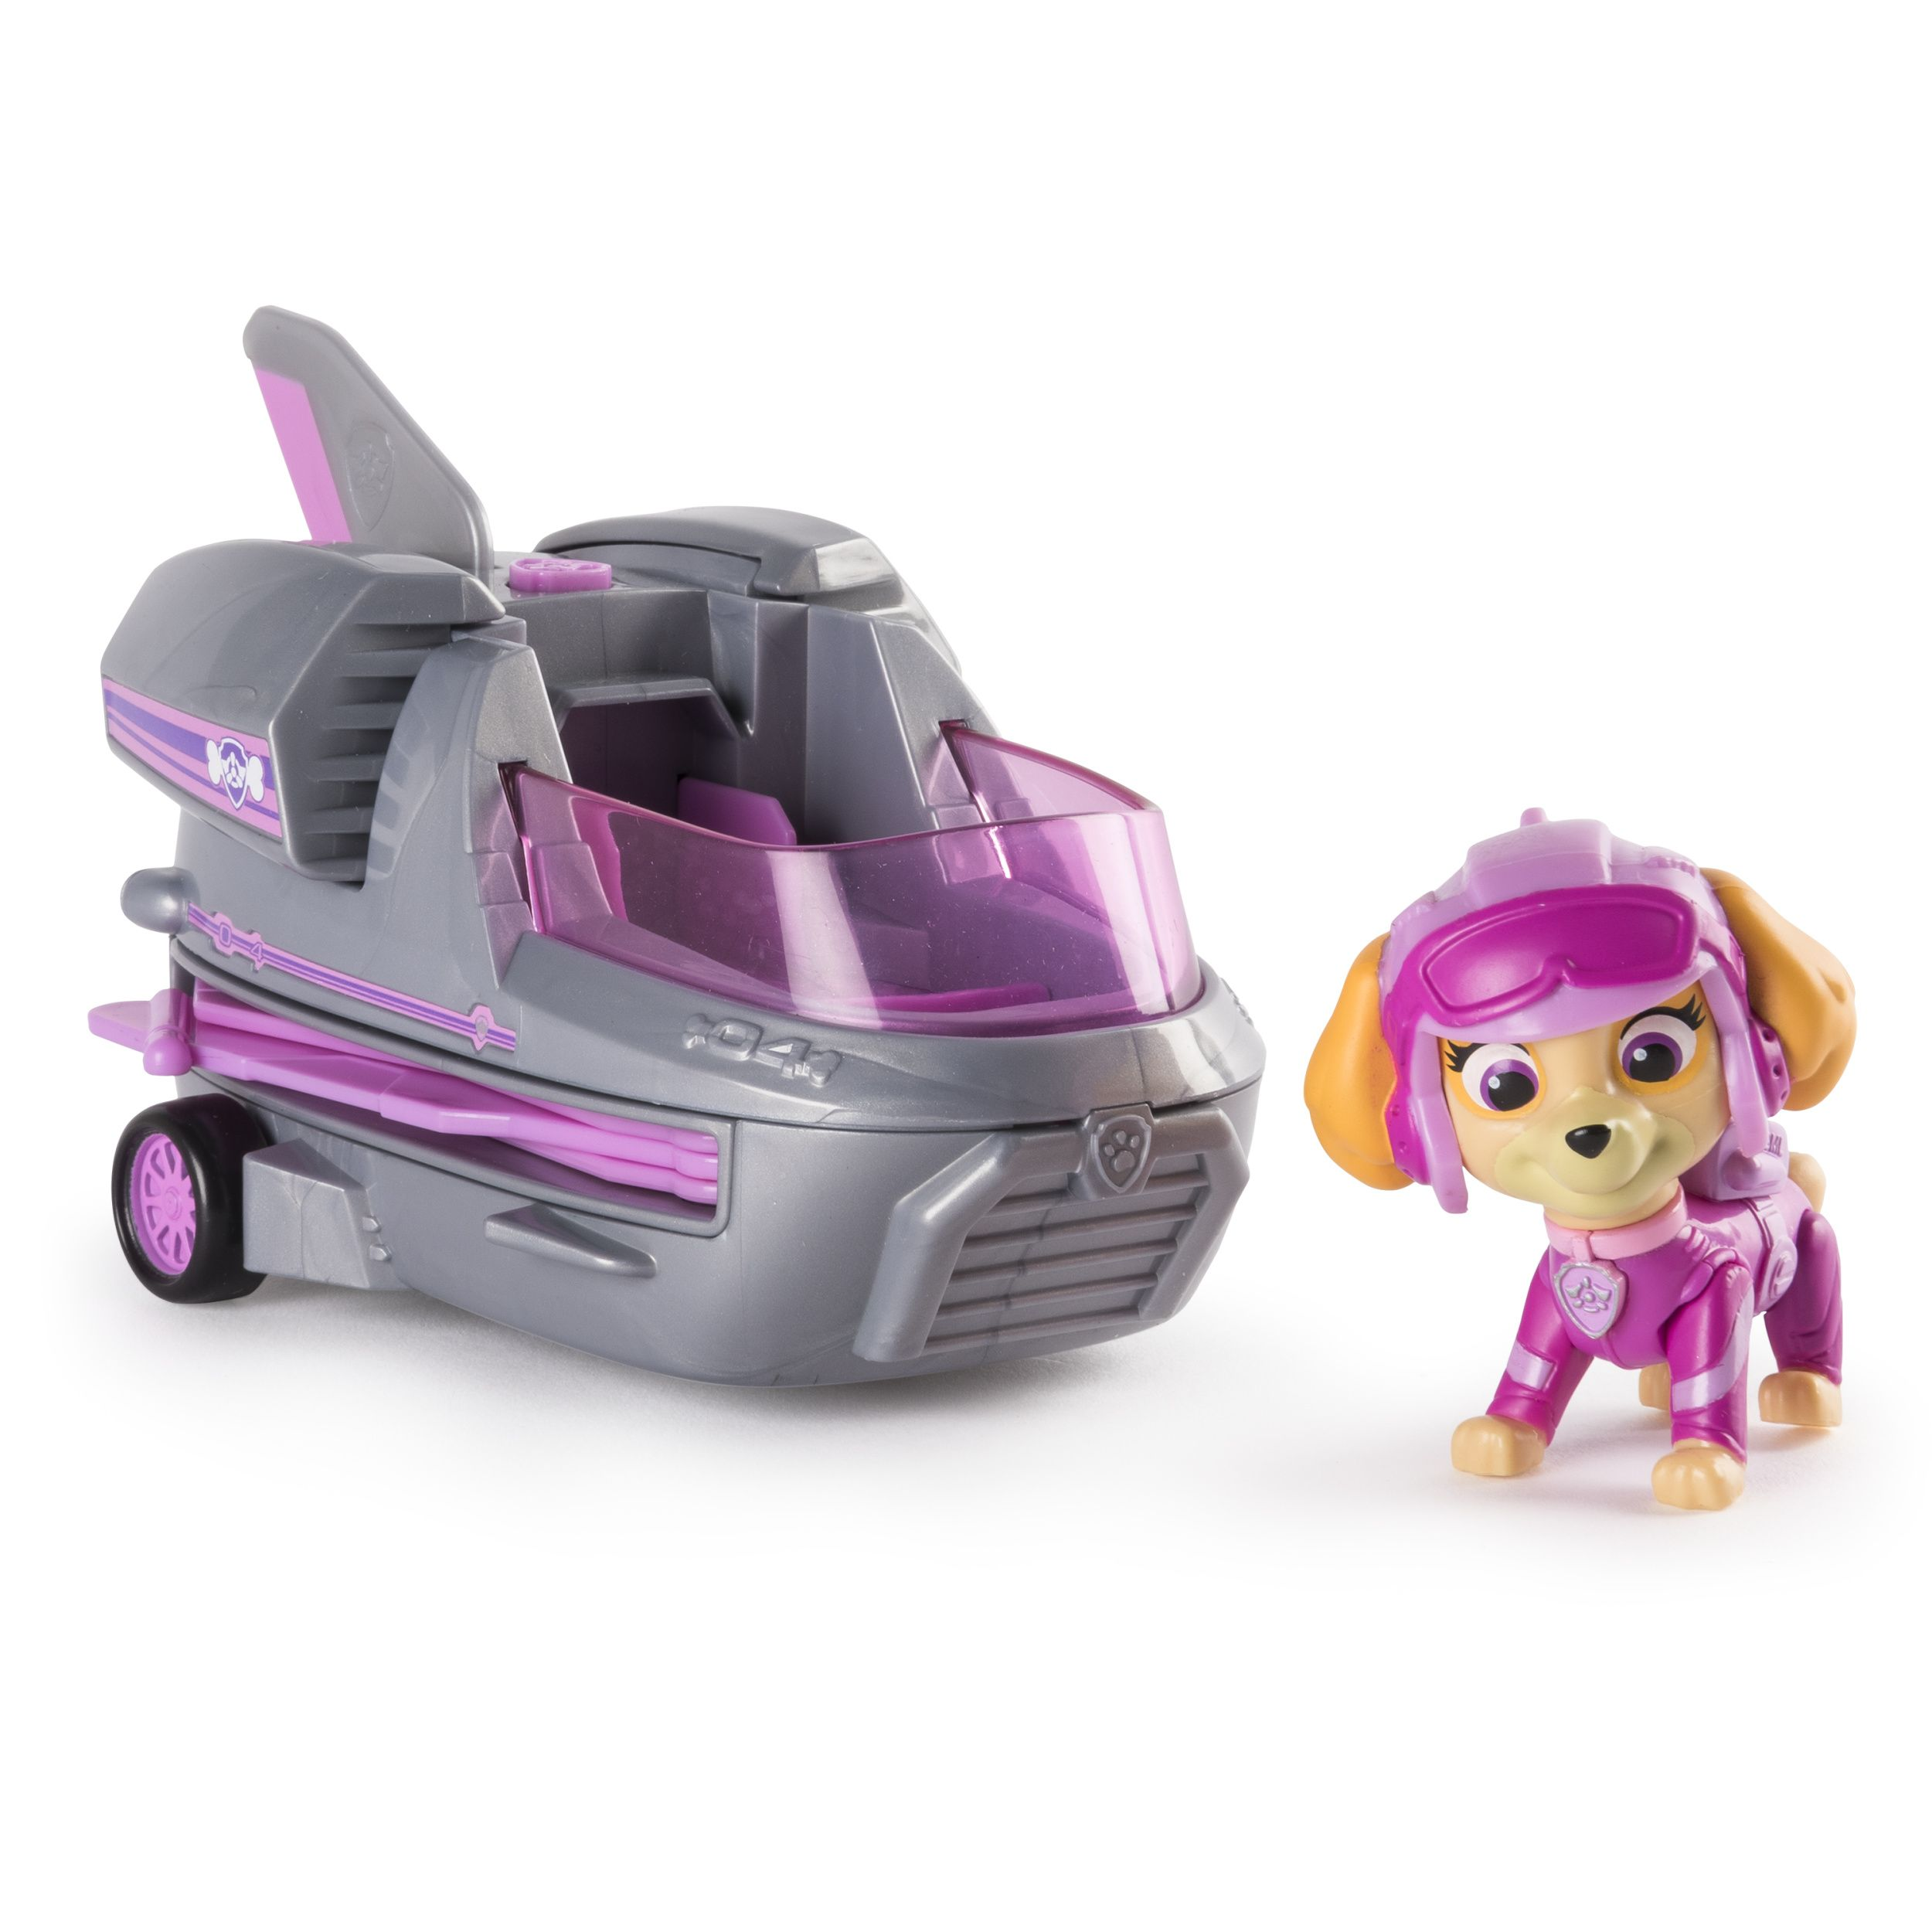 Paw Patrol – Skye's Rescue Jet with Extendable Wings